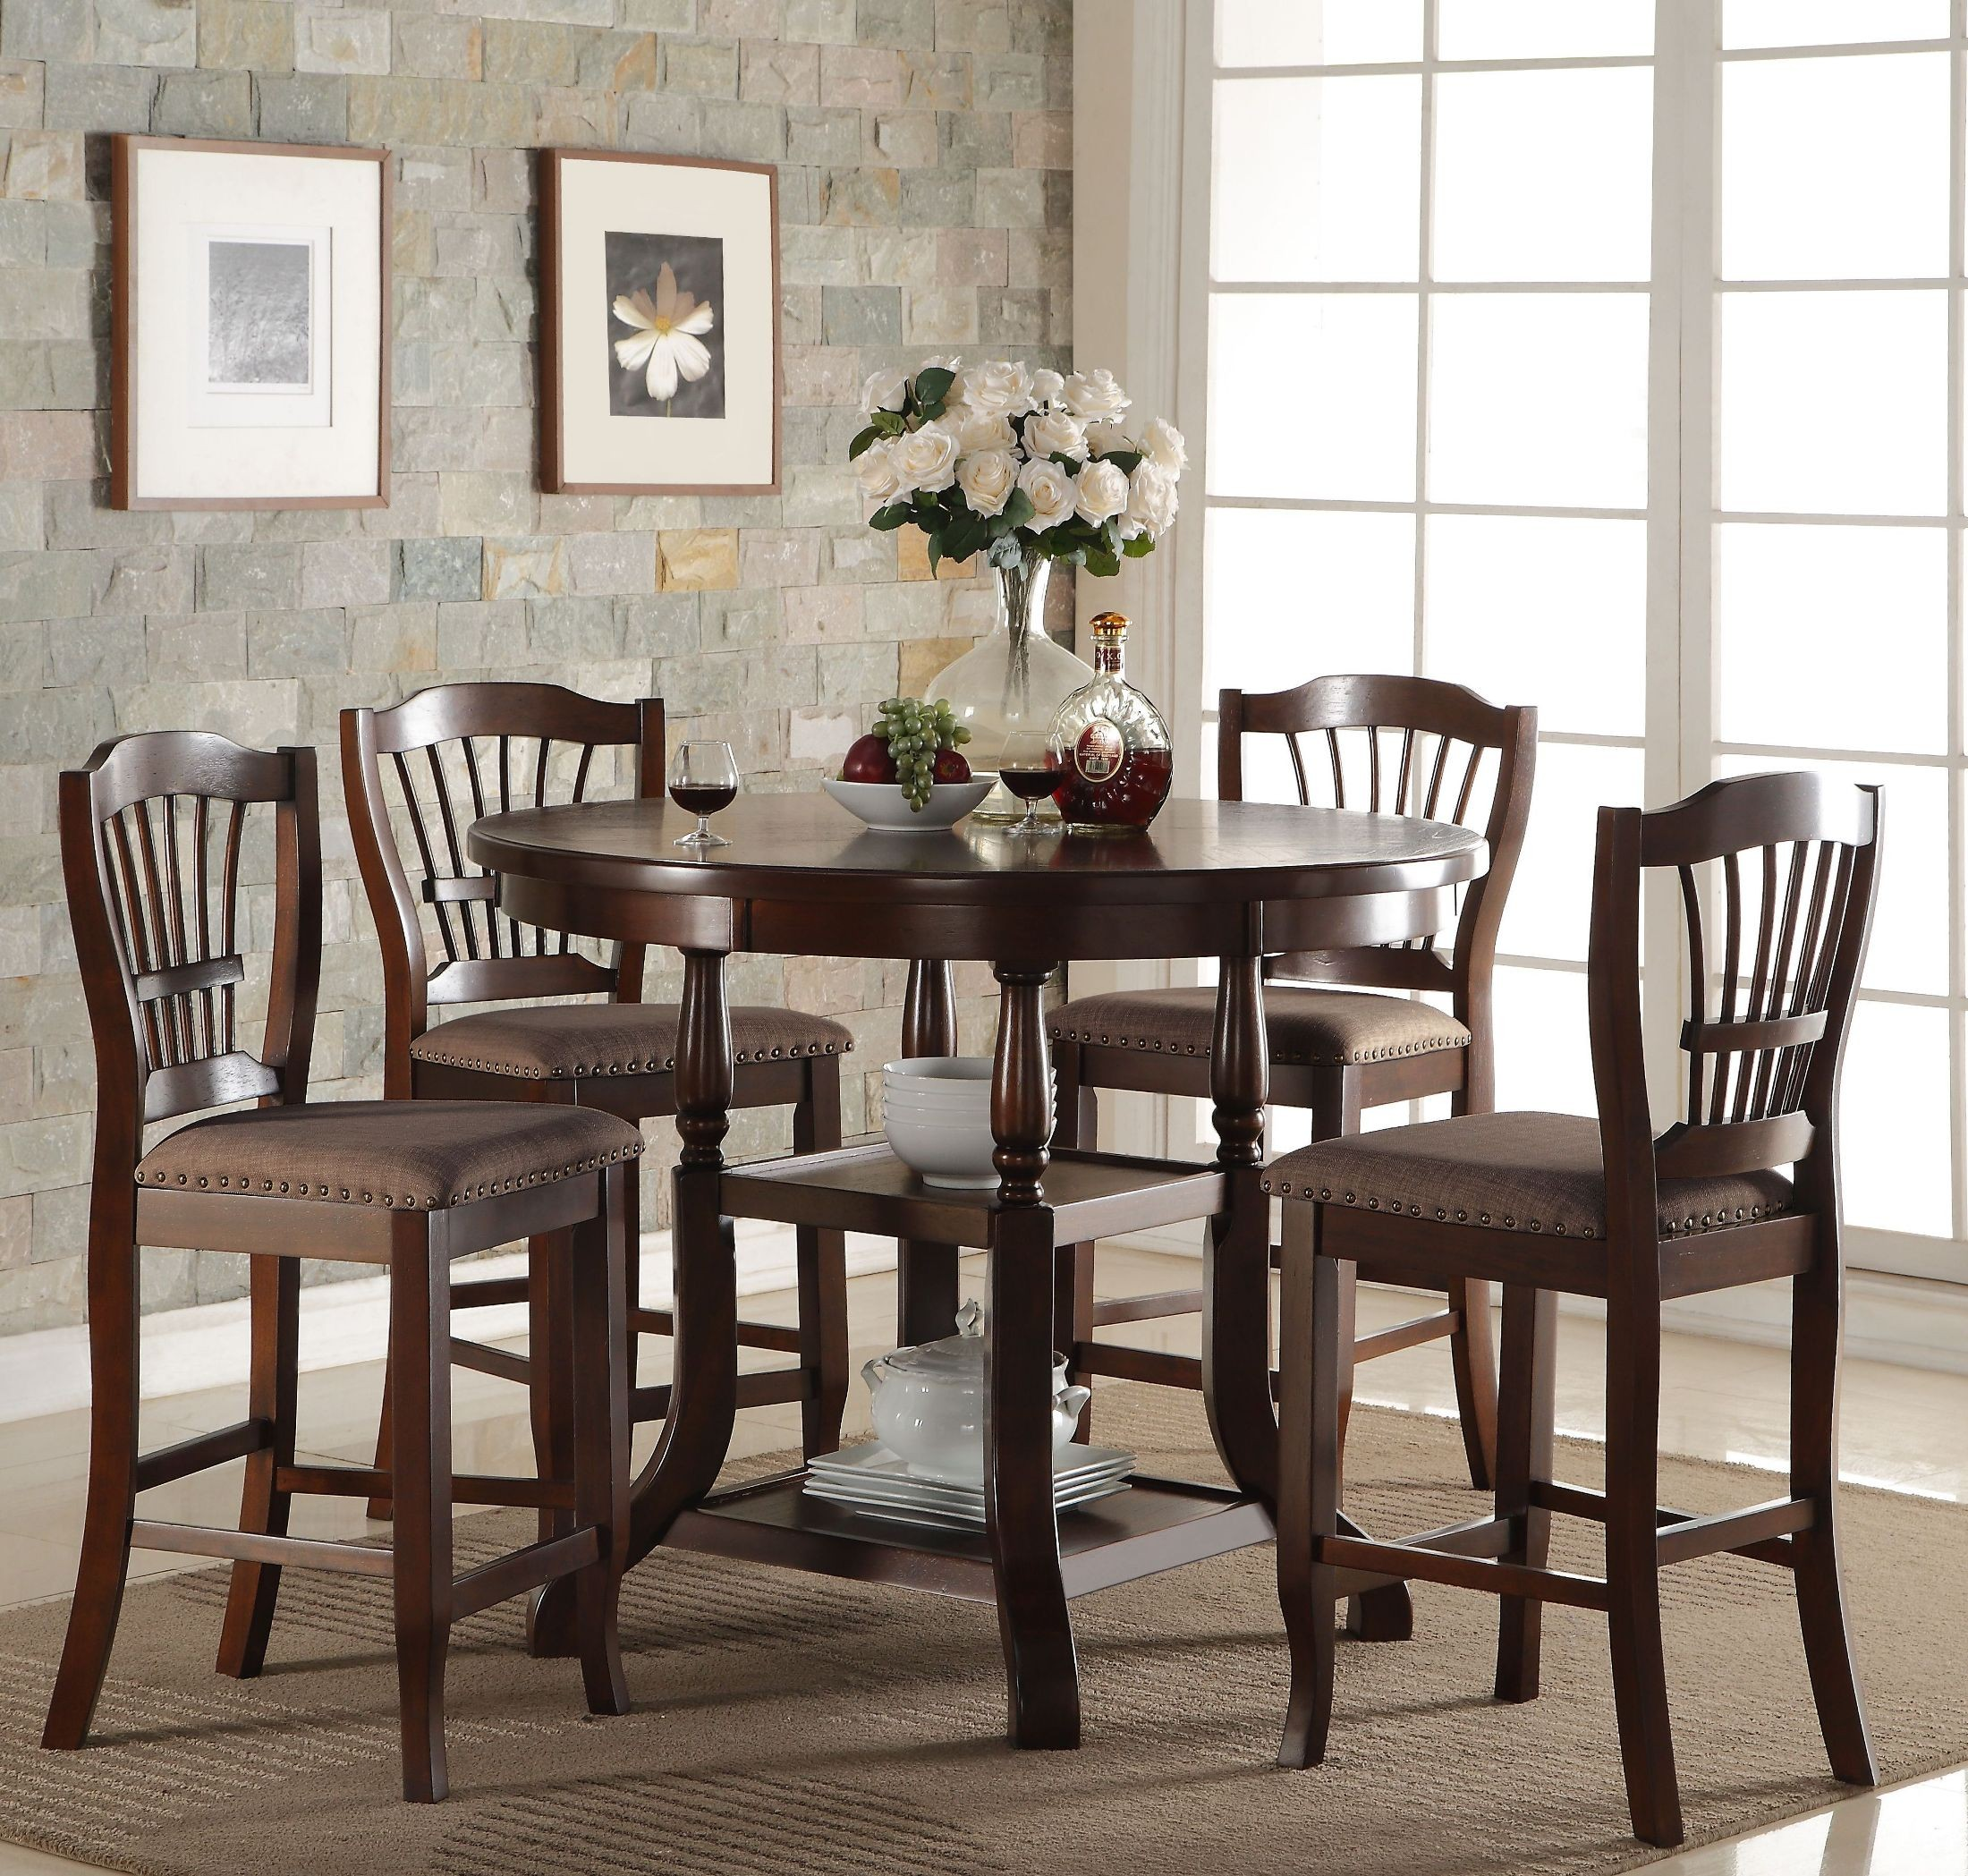 bixby espresso round counter height dining room set from new classic